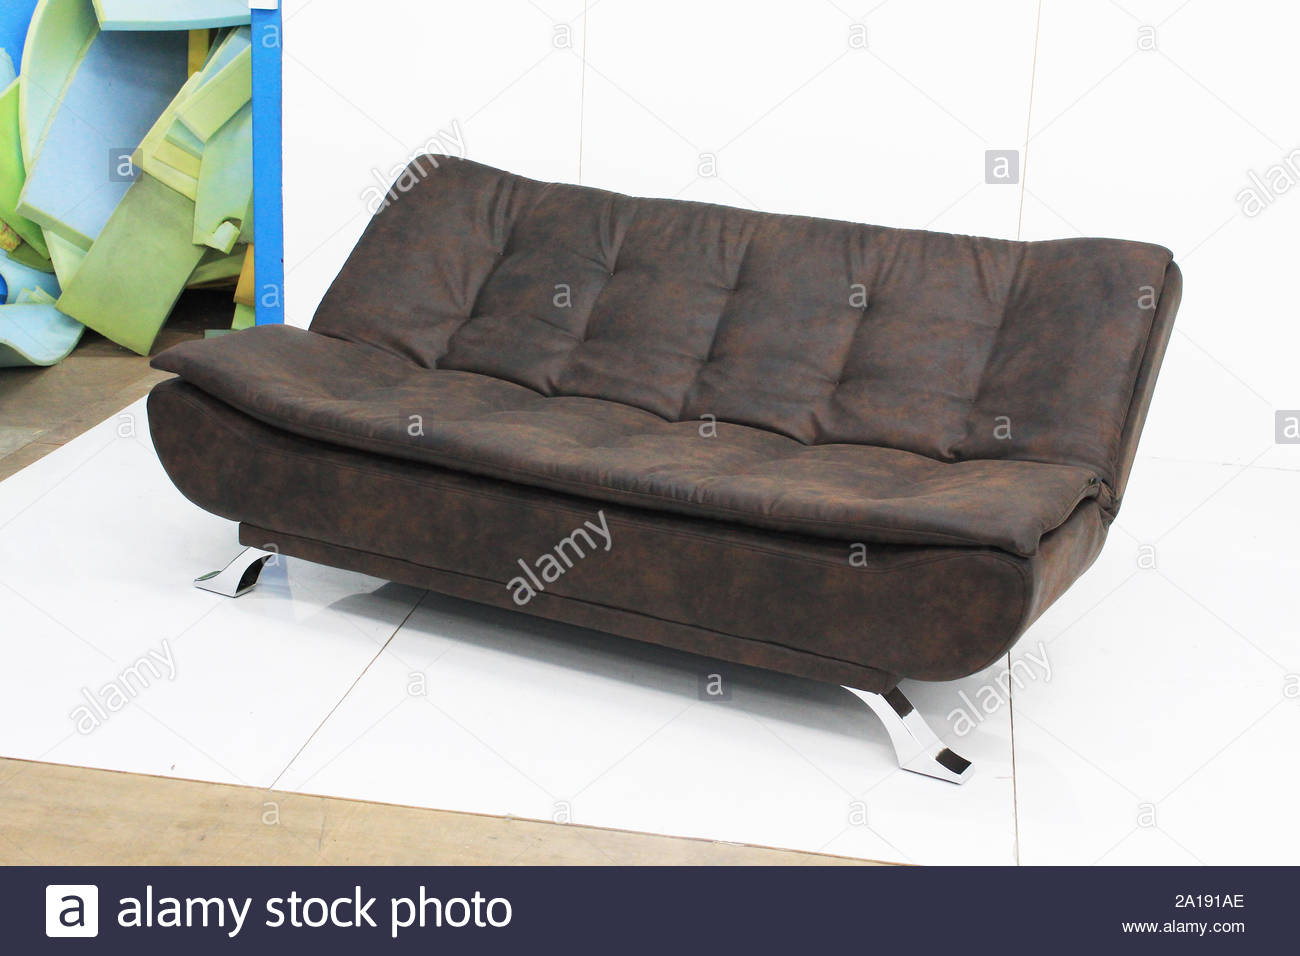 Transformer sofa bed furniture, adjustable couch, in leather ...